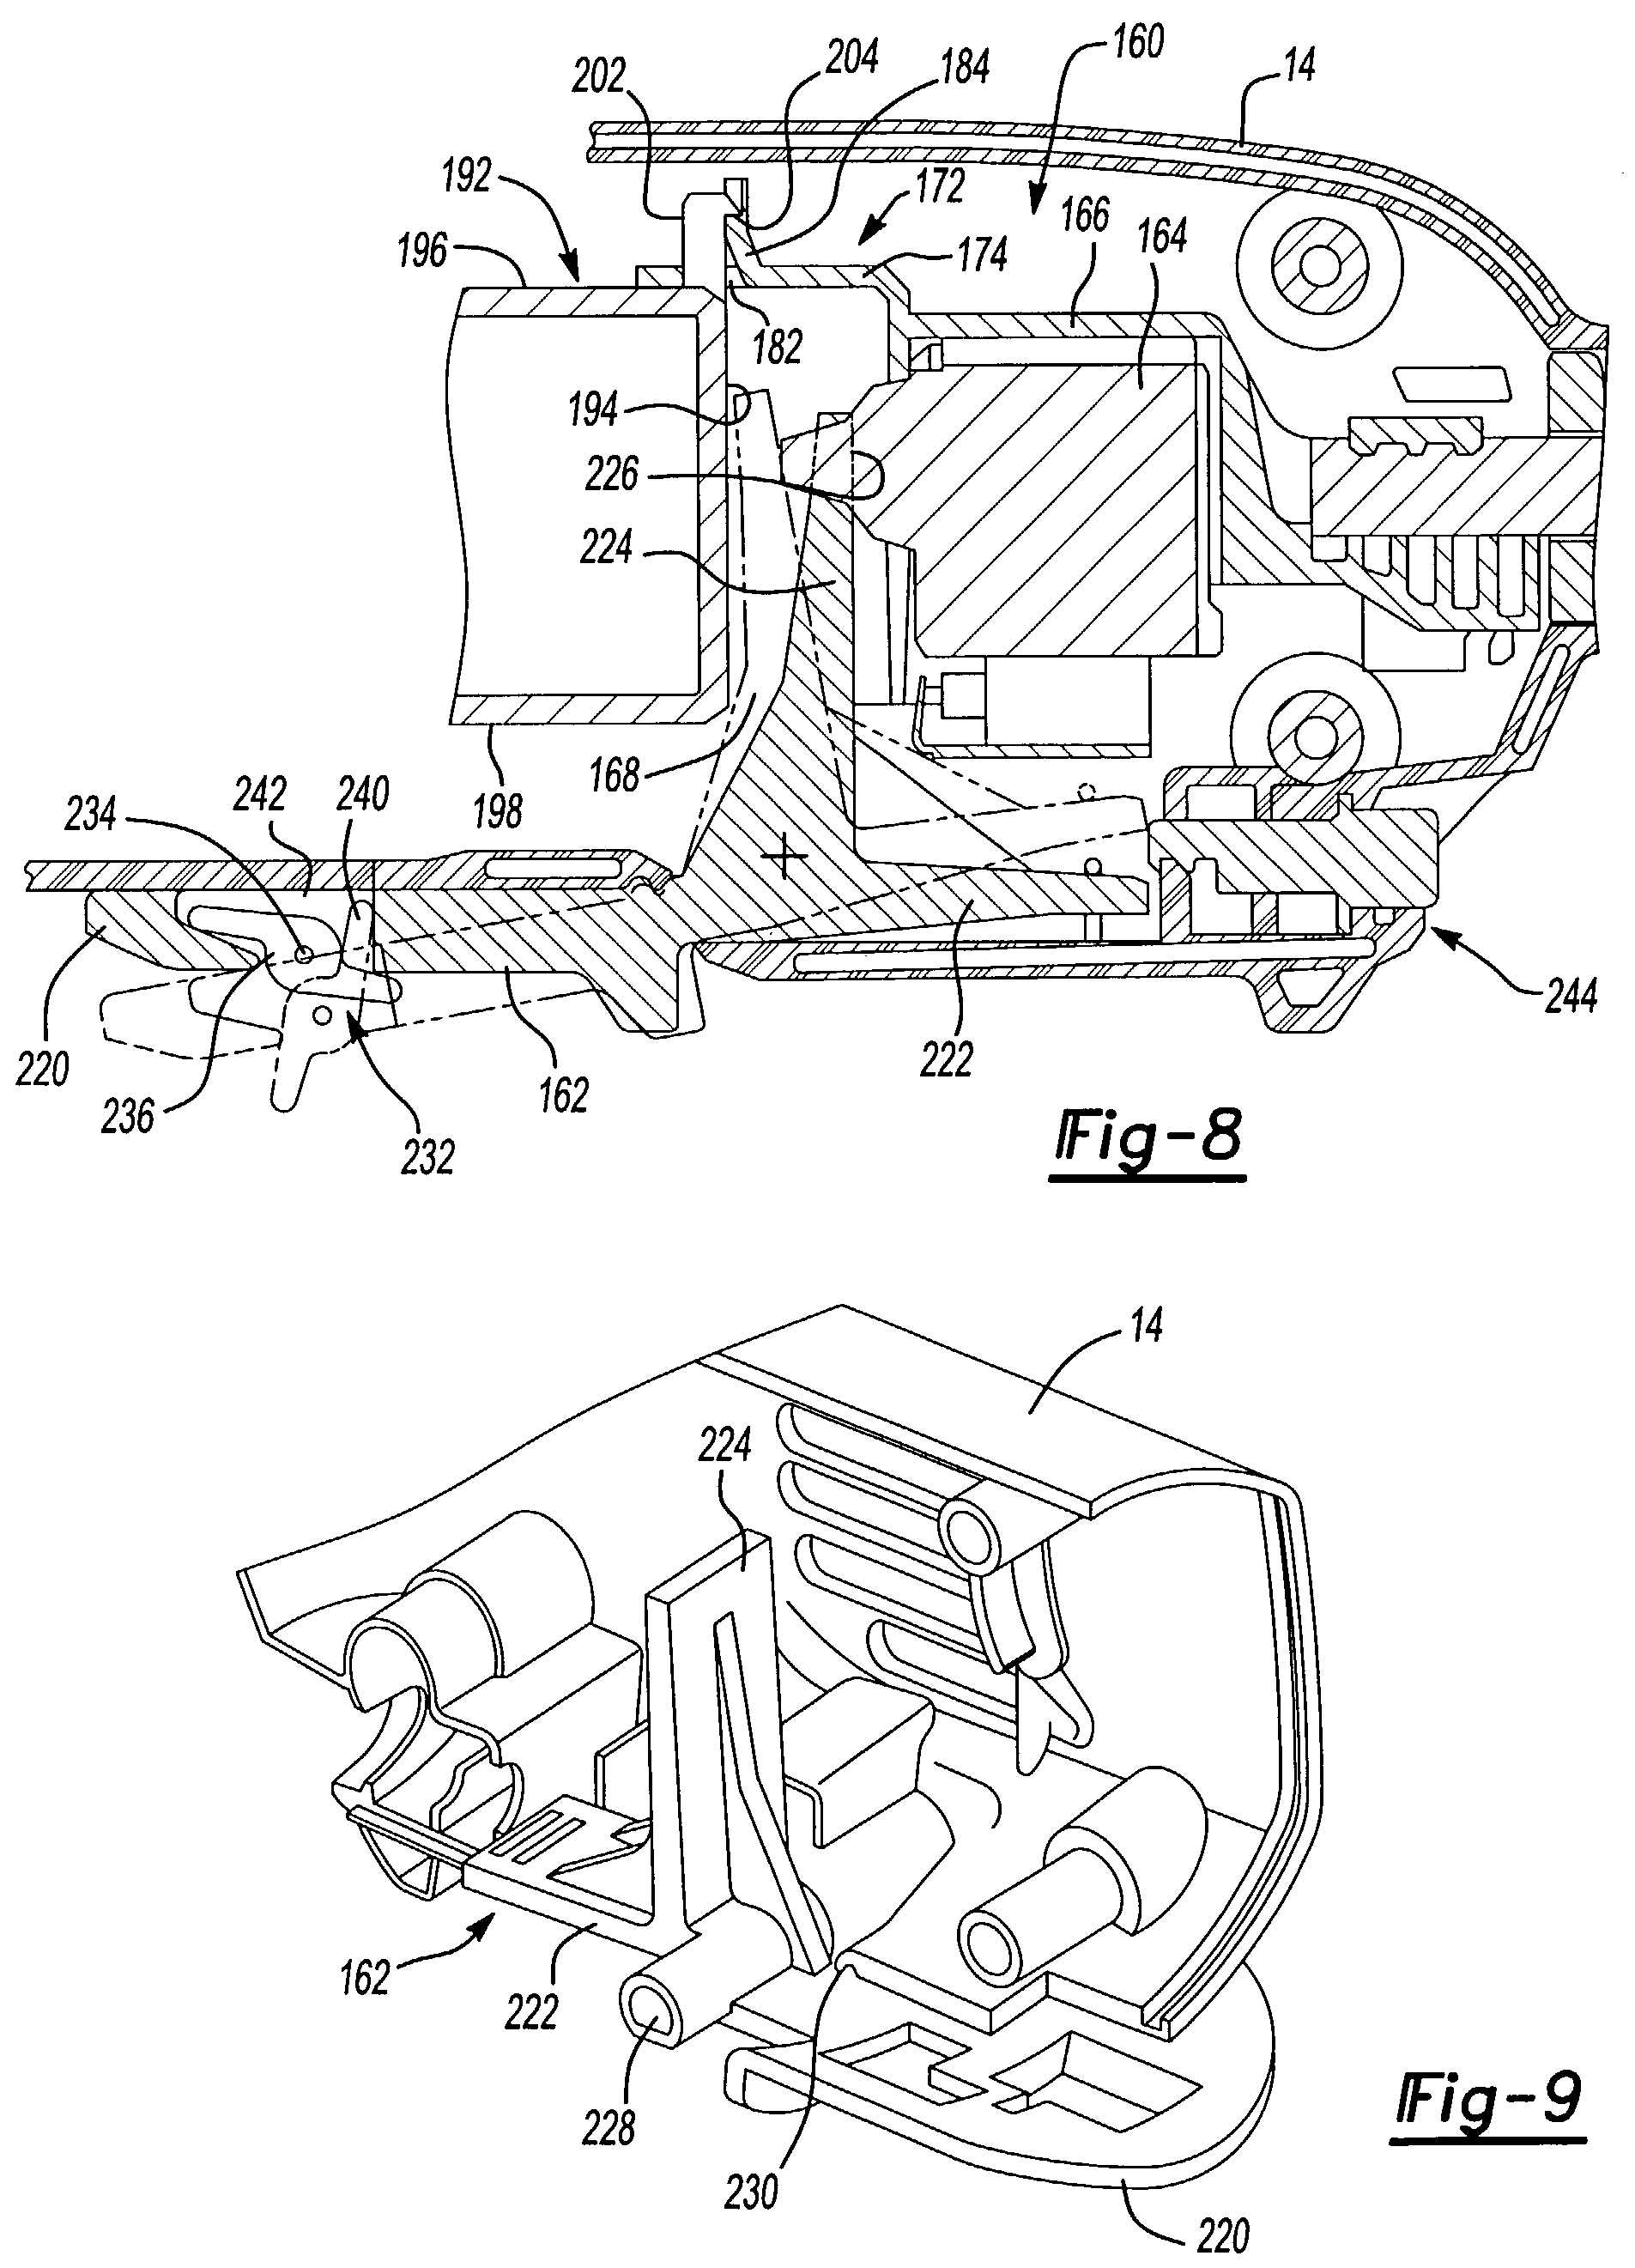 surface grinder wiring diagram 824 wiring diagram and schematic patent ep0713434b1 z axis drive for 2 hine tool google